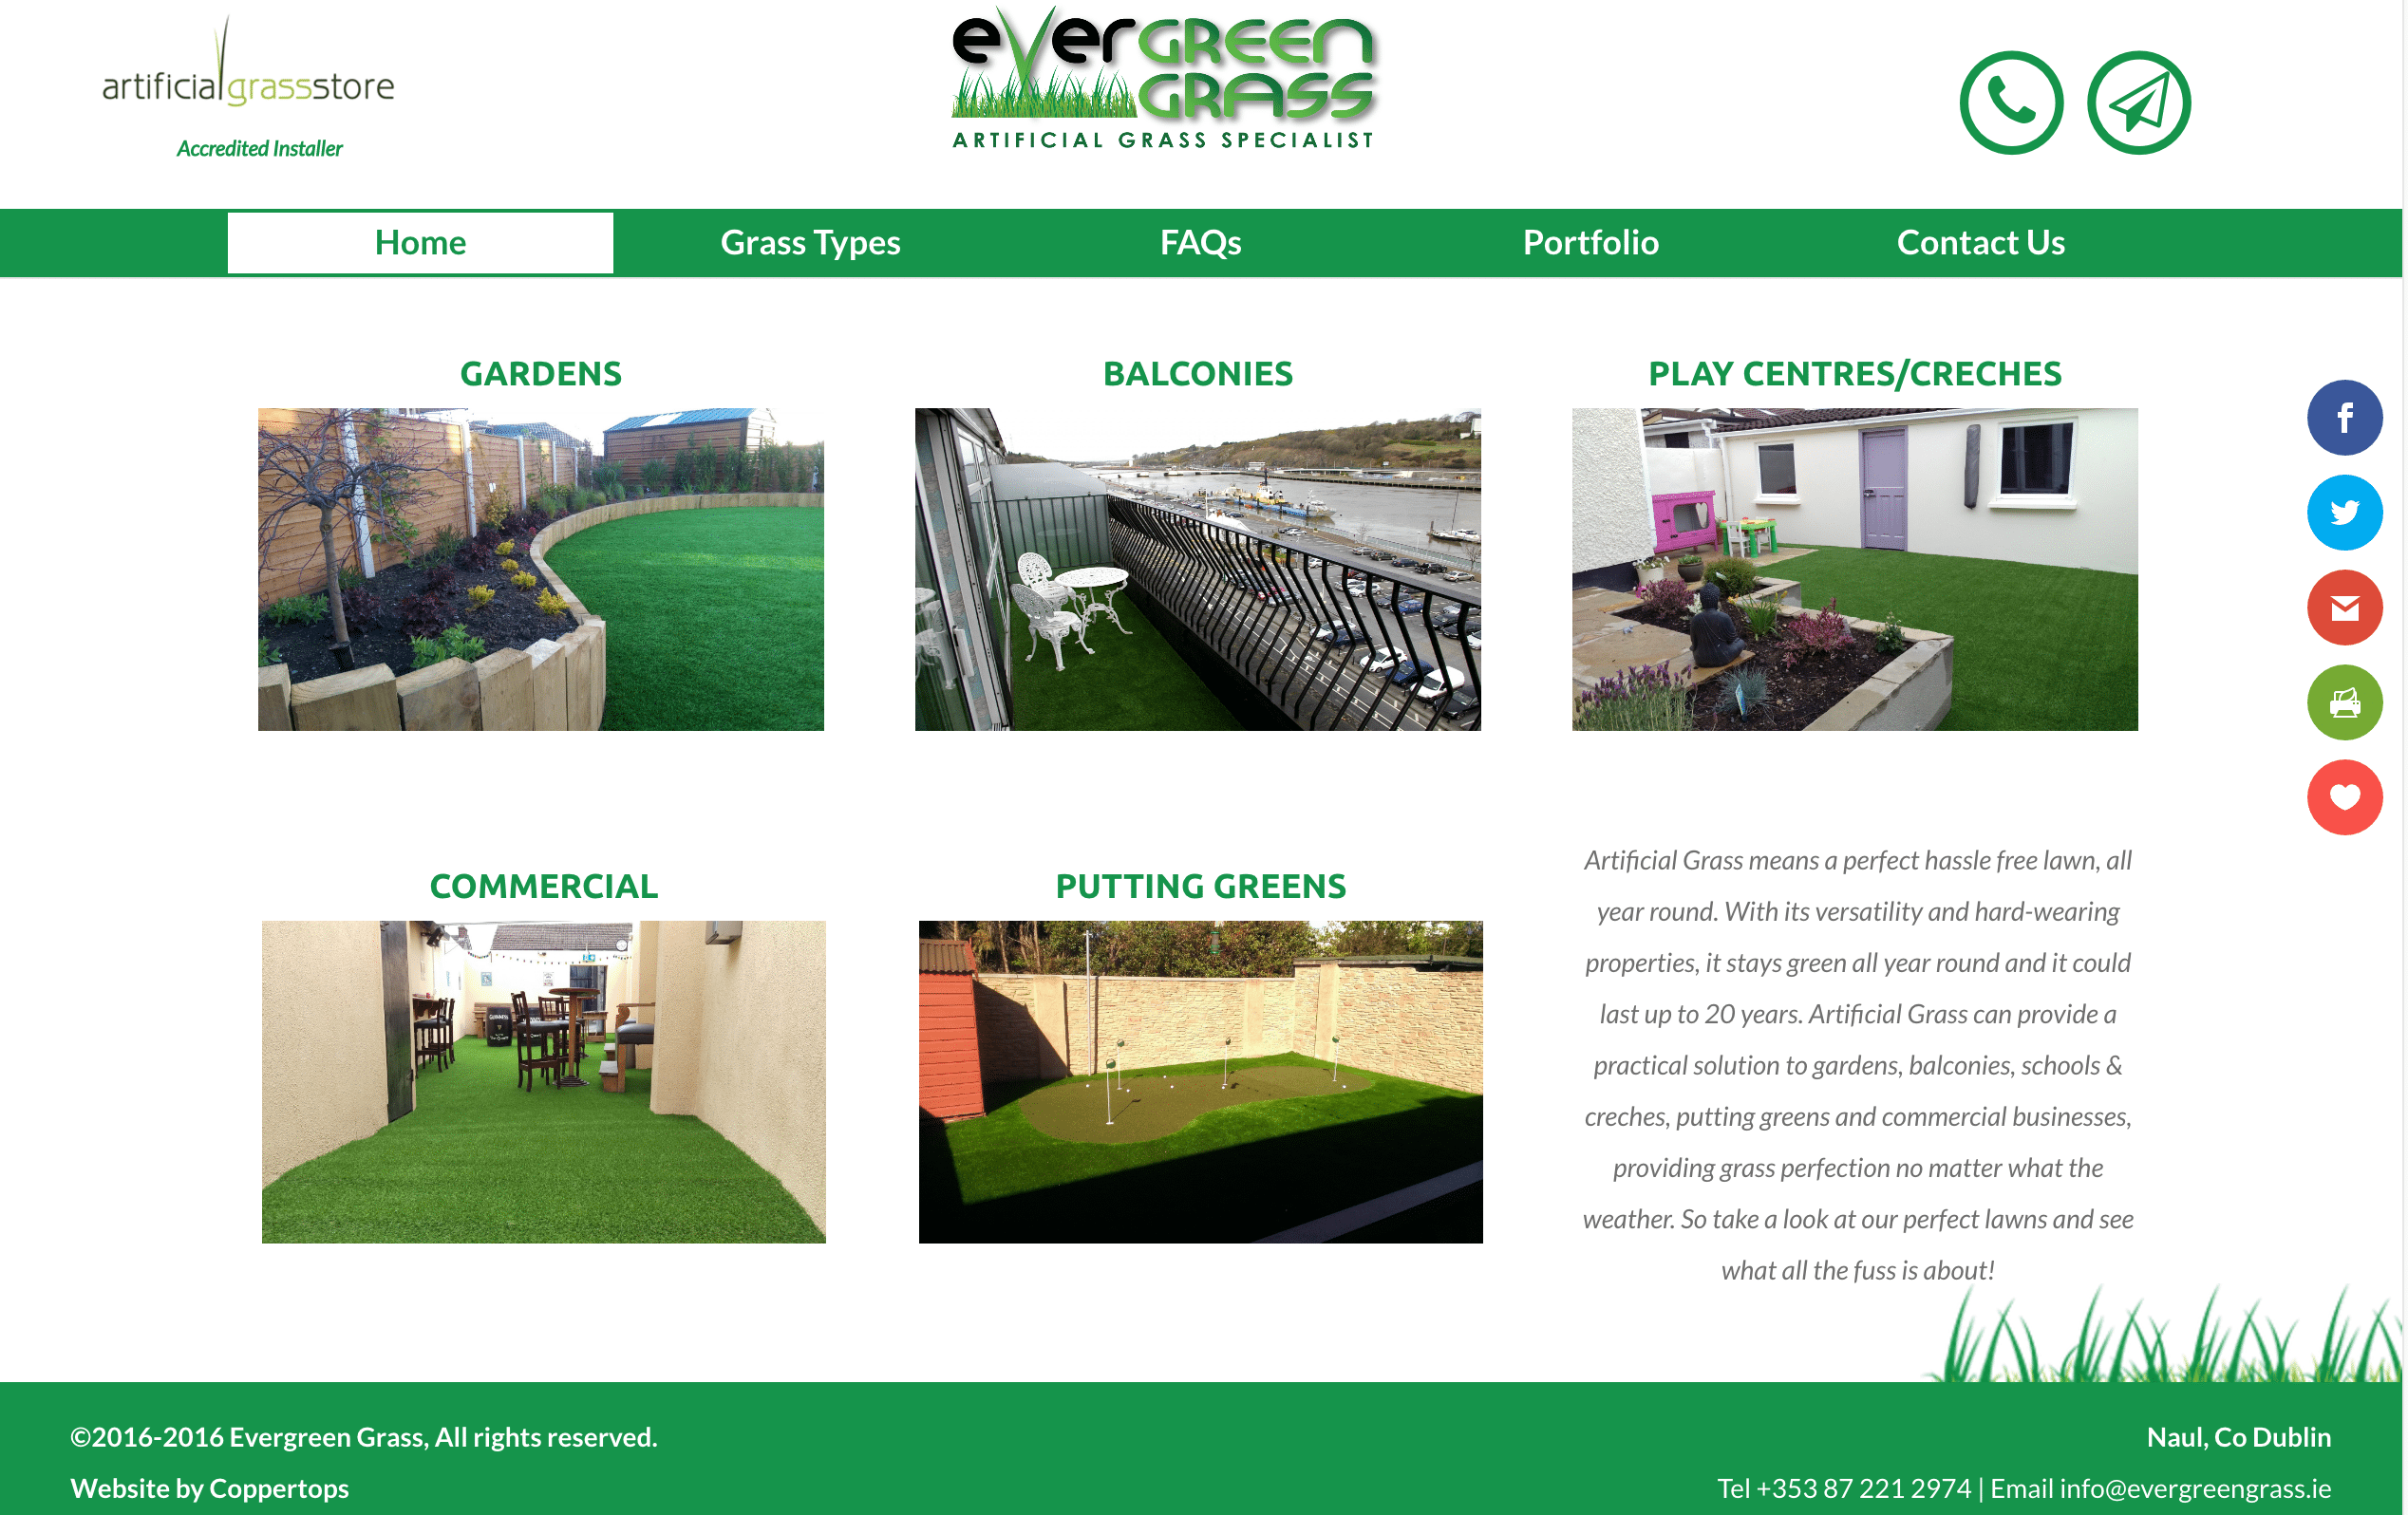 Evergreen Grass Web Design